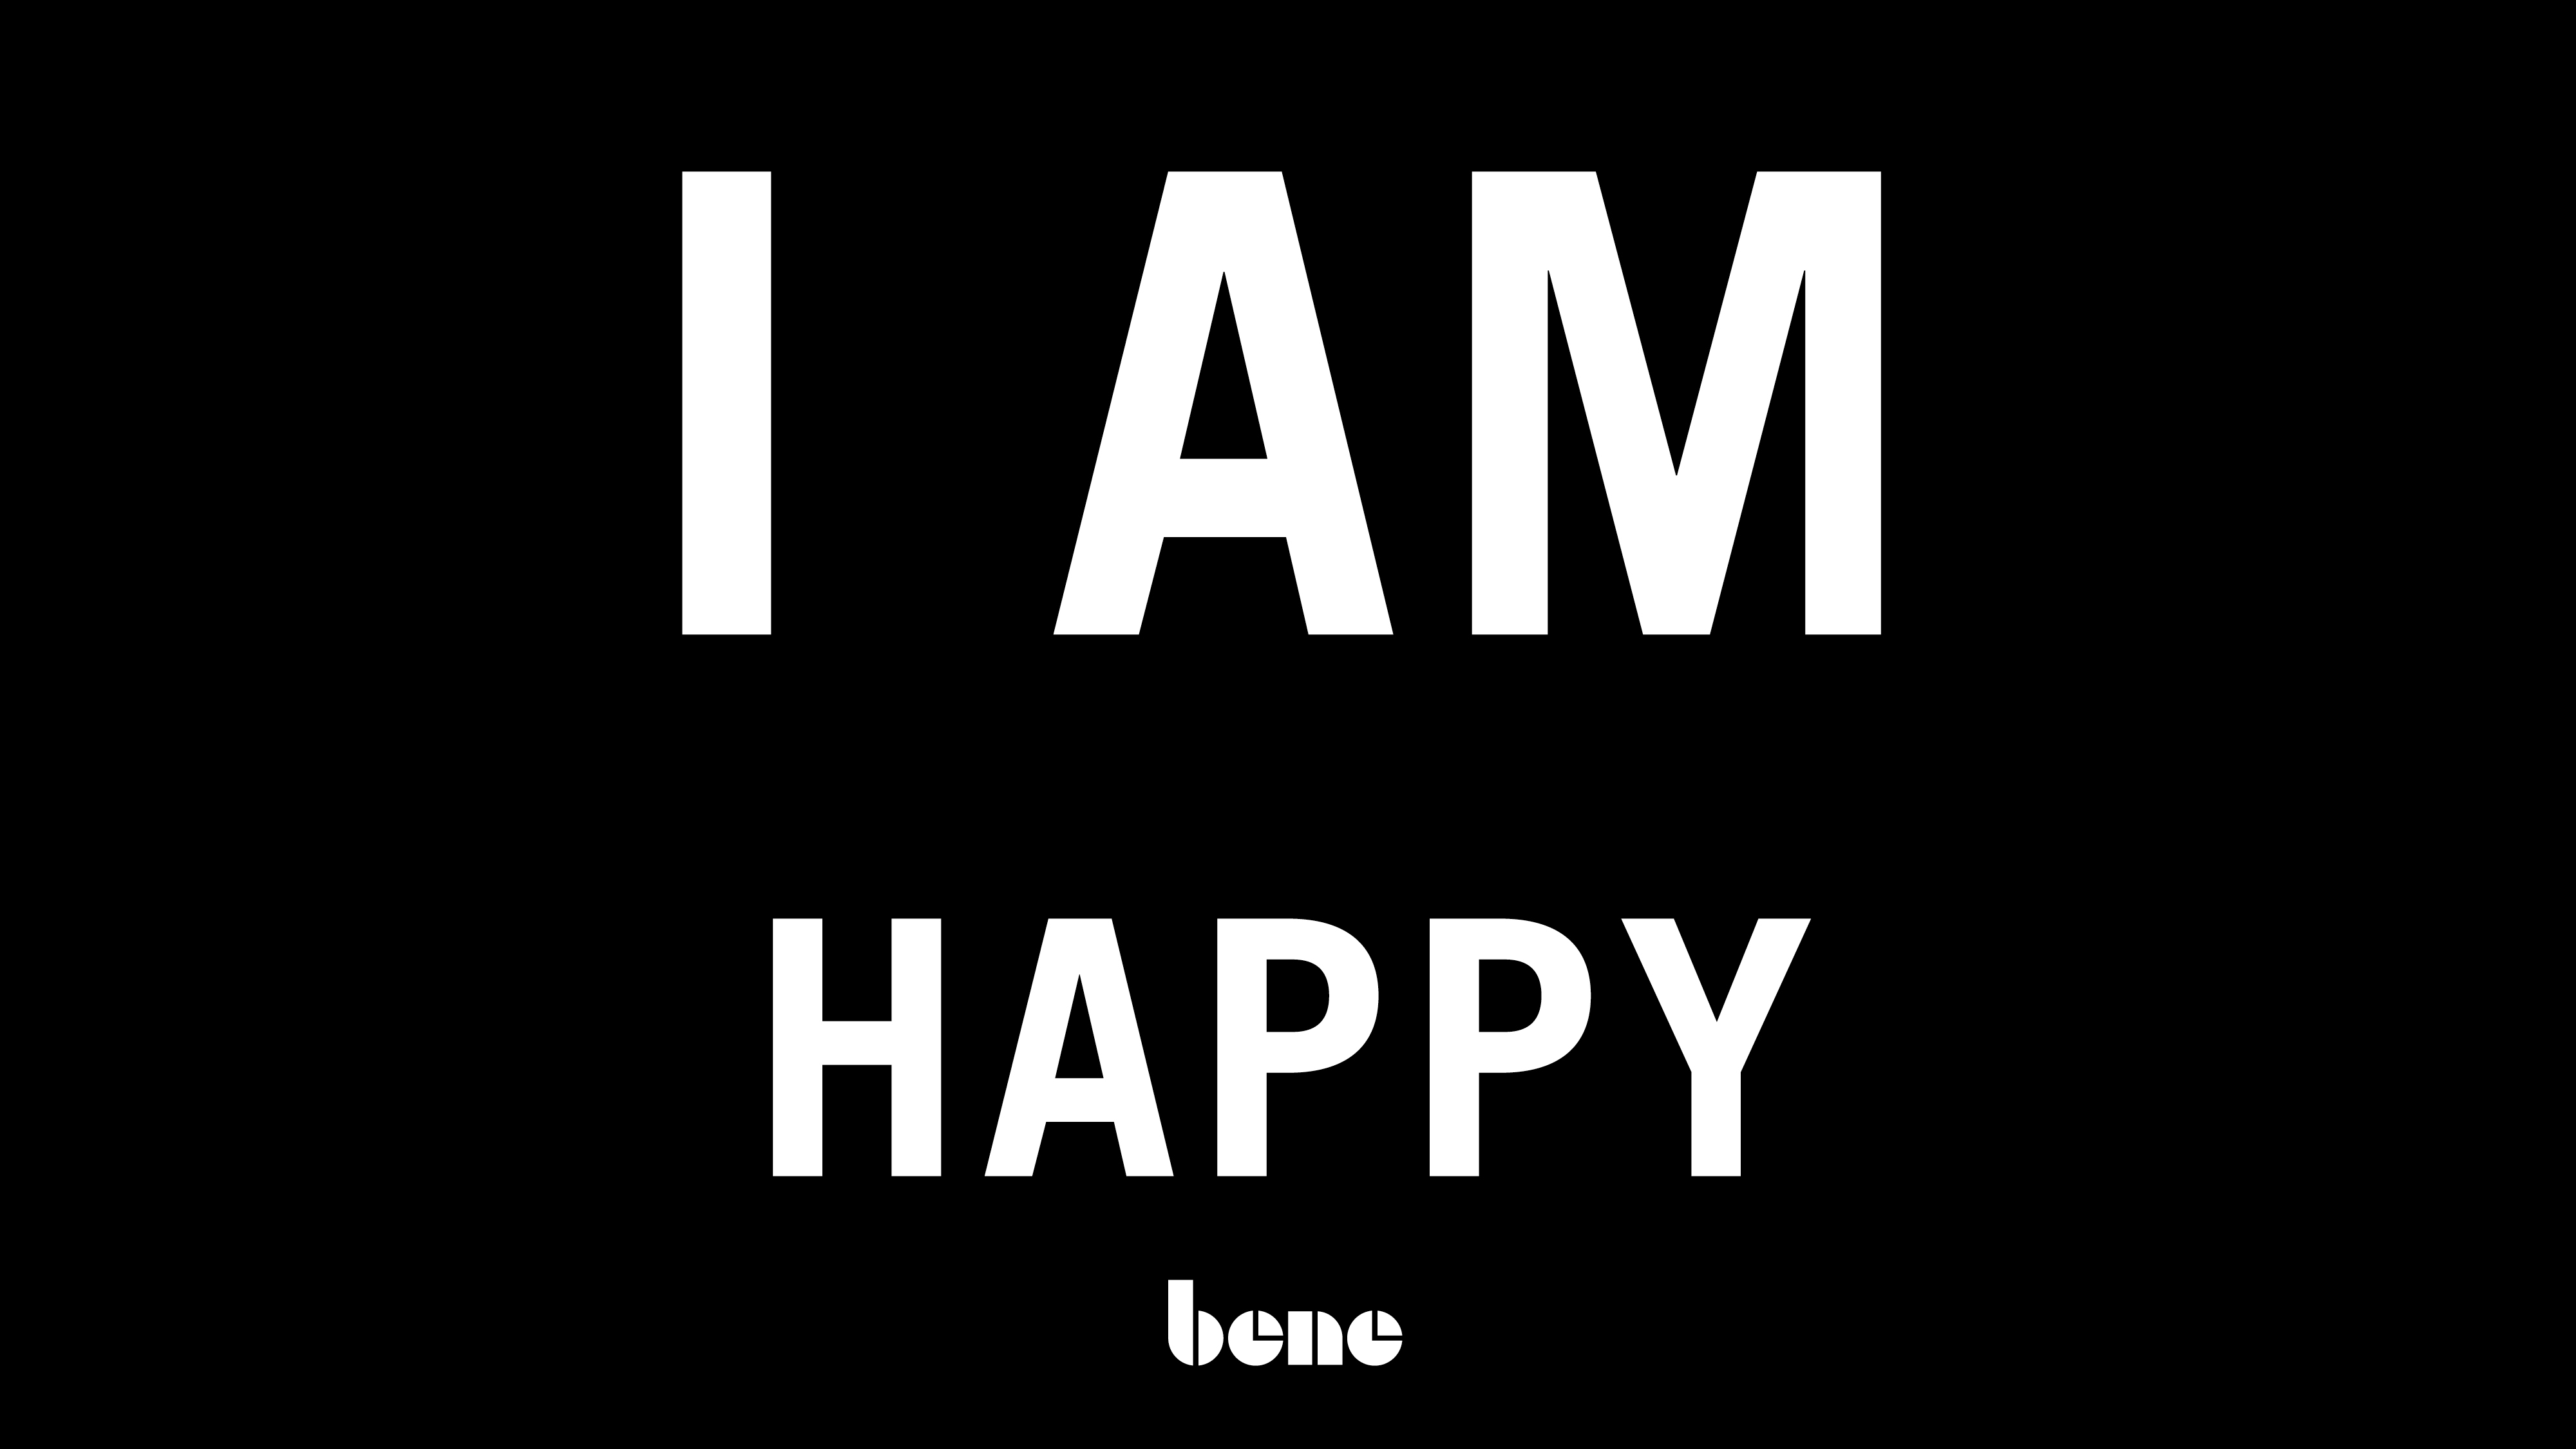 i am bene wallpaper for download - in bene